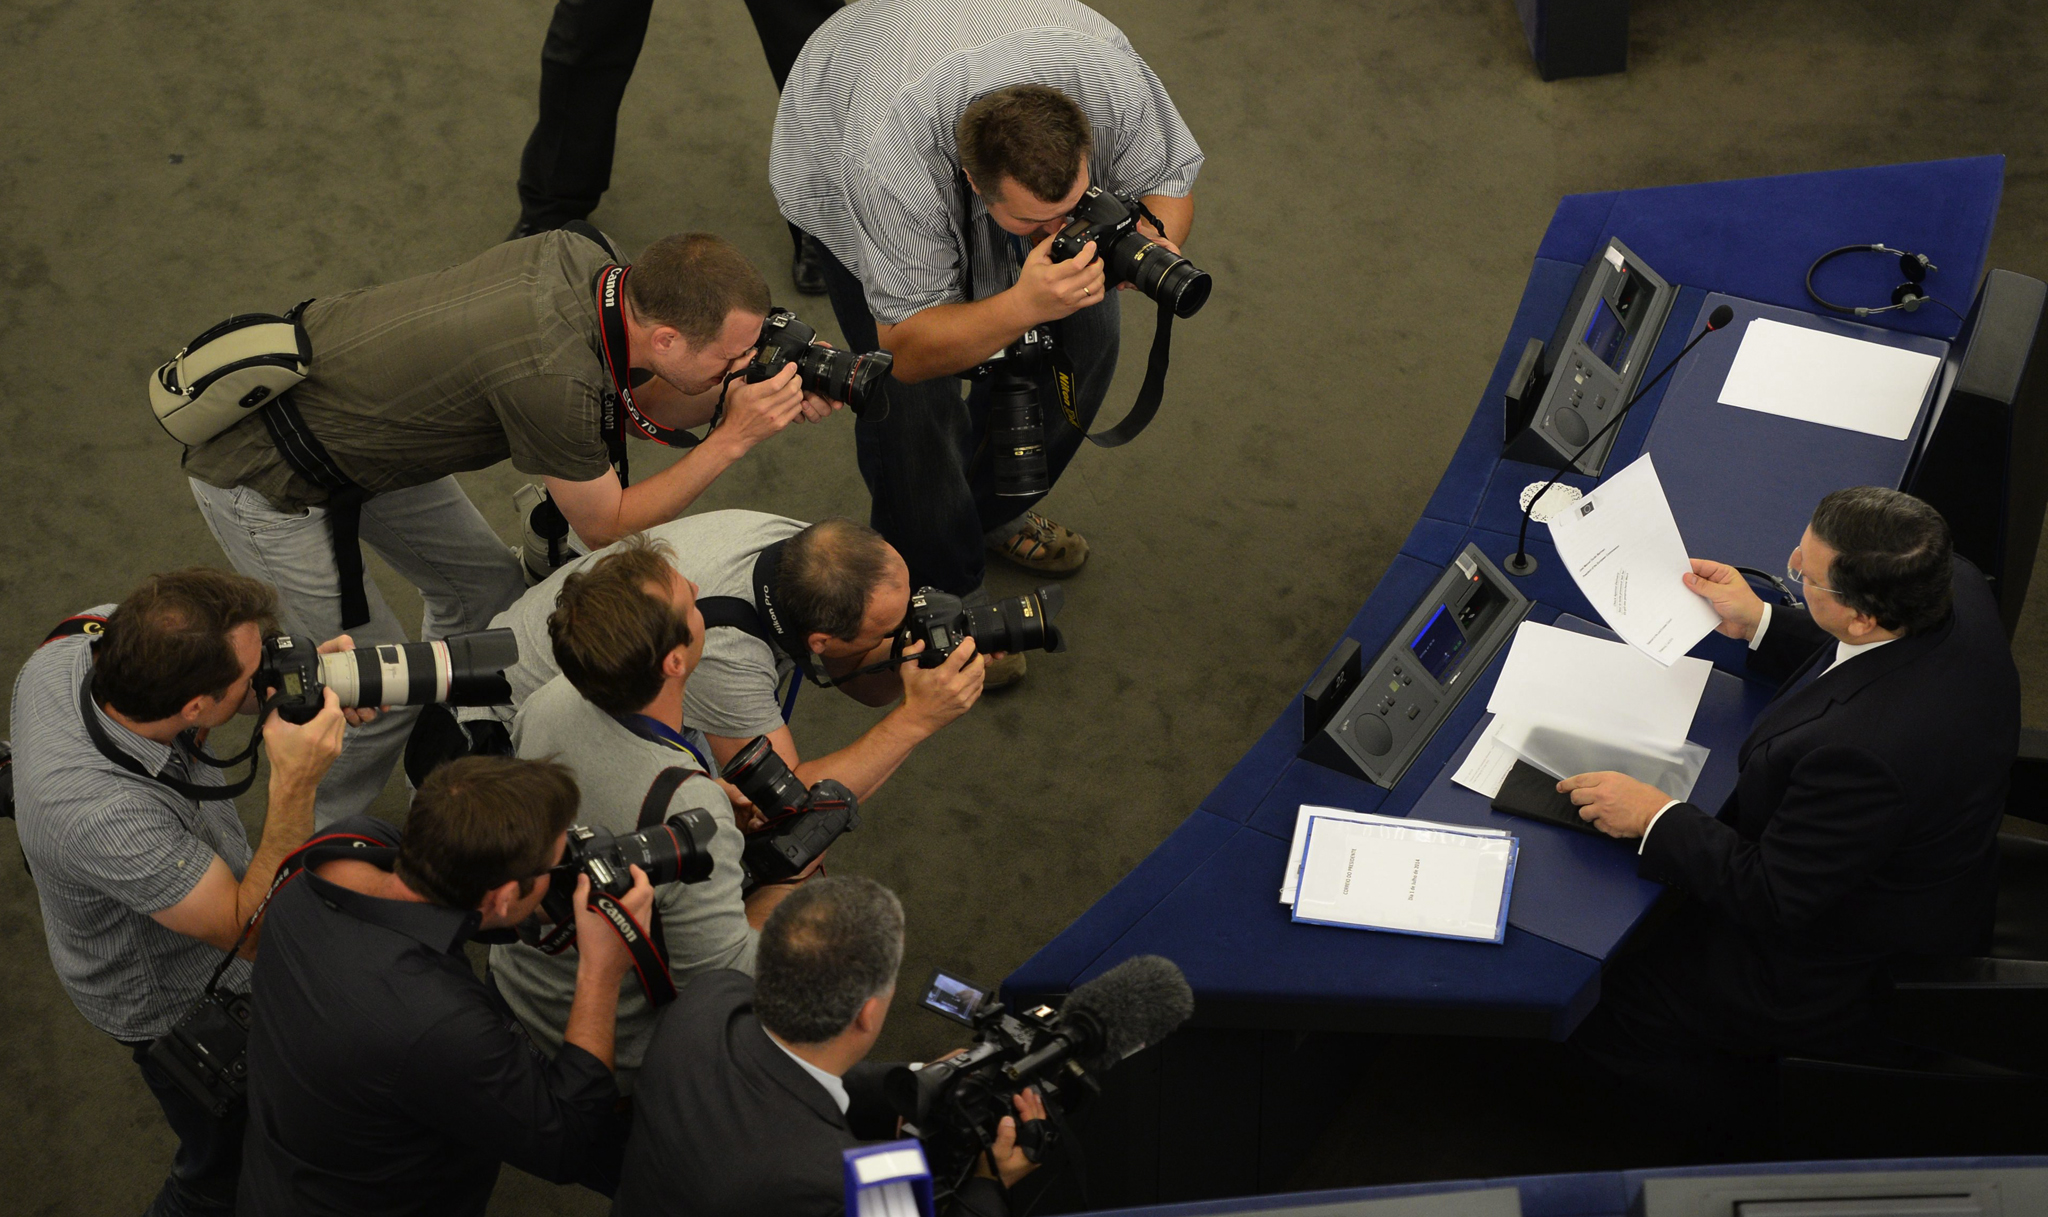 Outgoing European Commission President Jose Manuel Barroso is watched by photographers as he reads in his papers on the second day of plenary session at the European Parliament in Strasbourg,